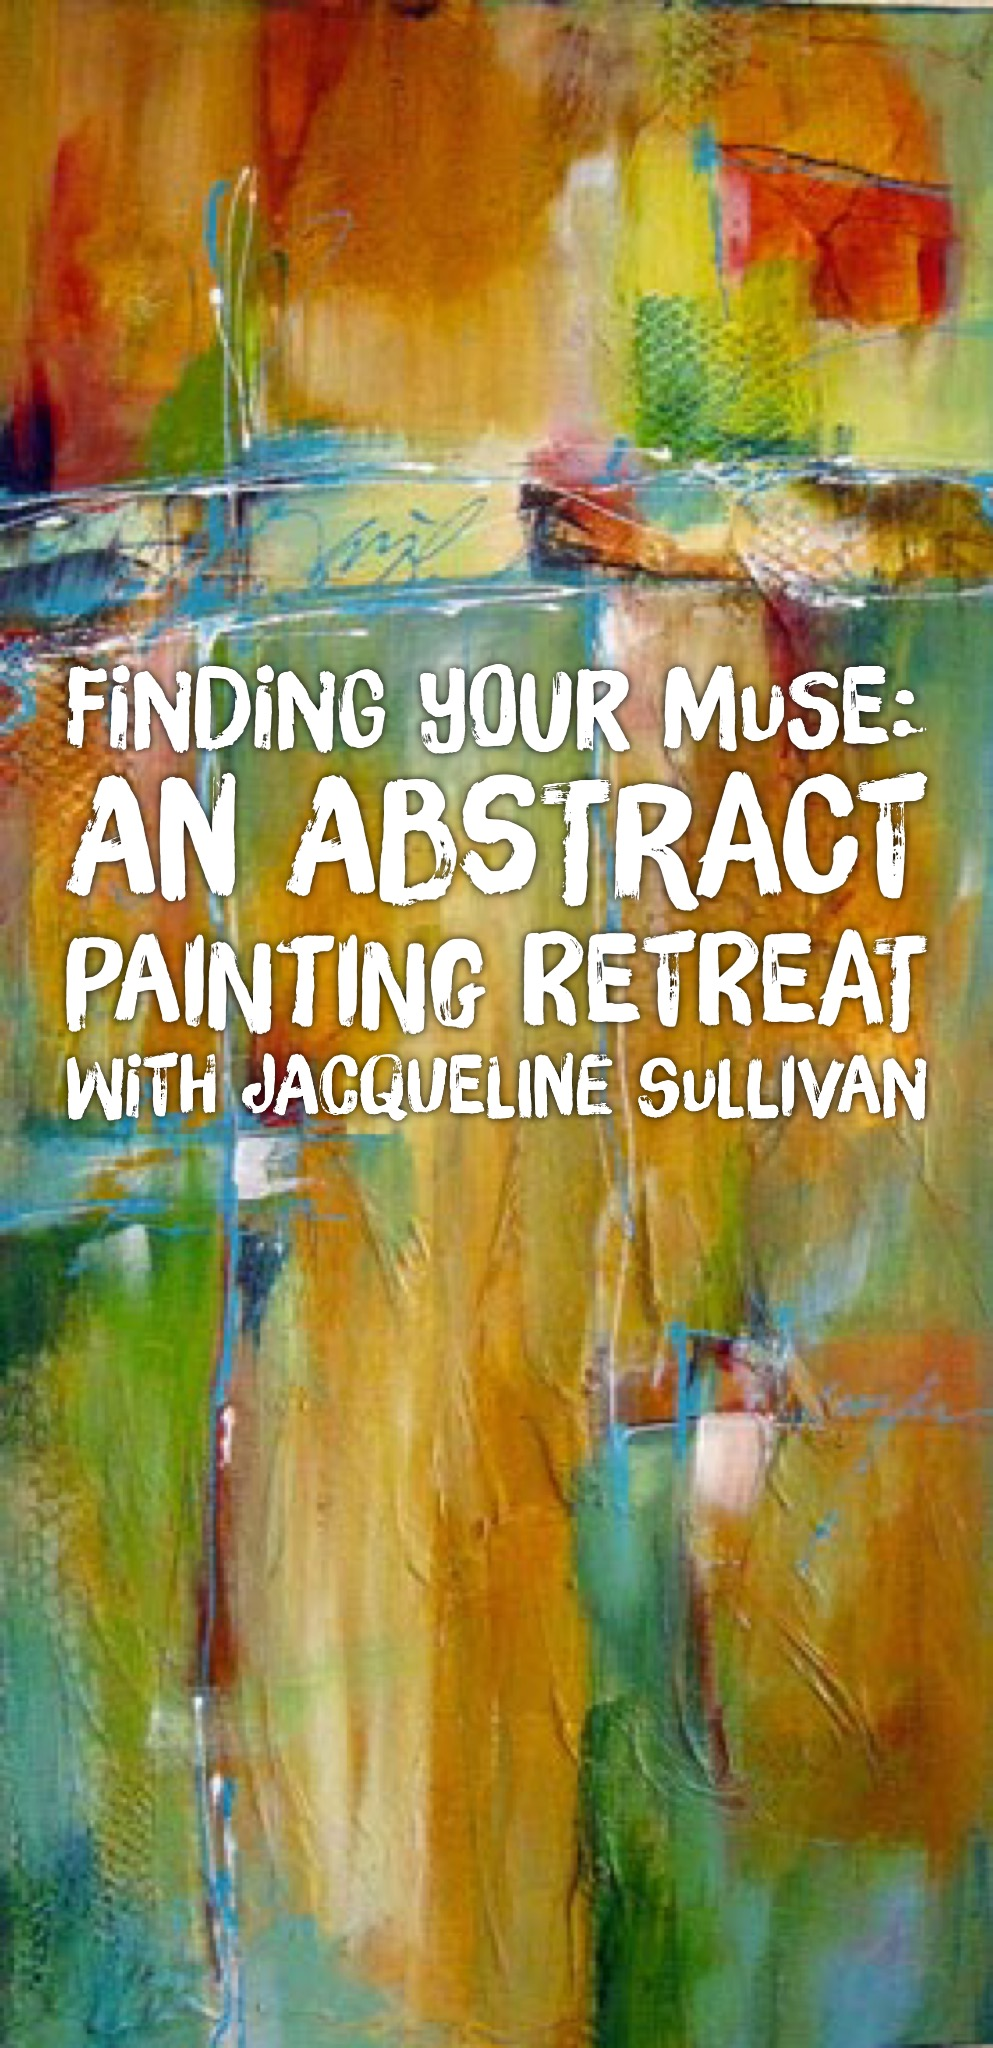 Finding Your Muse: An Abstract Painting Retreat